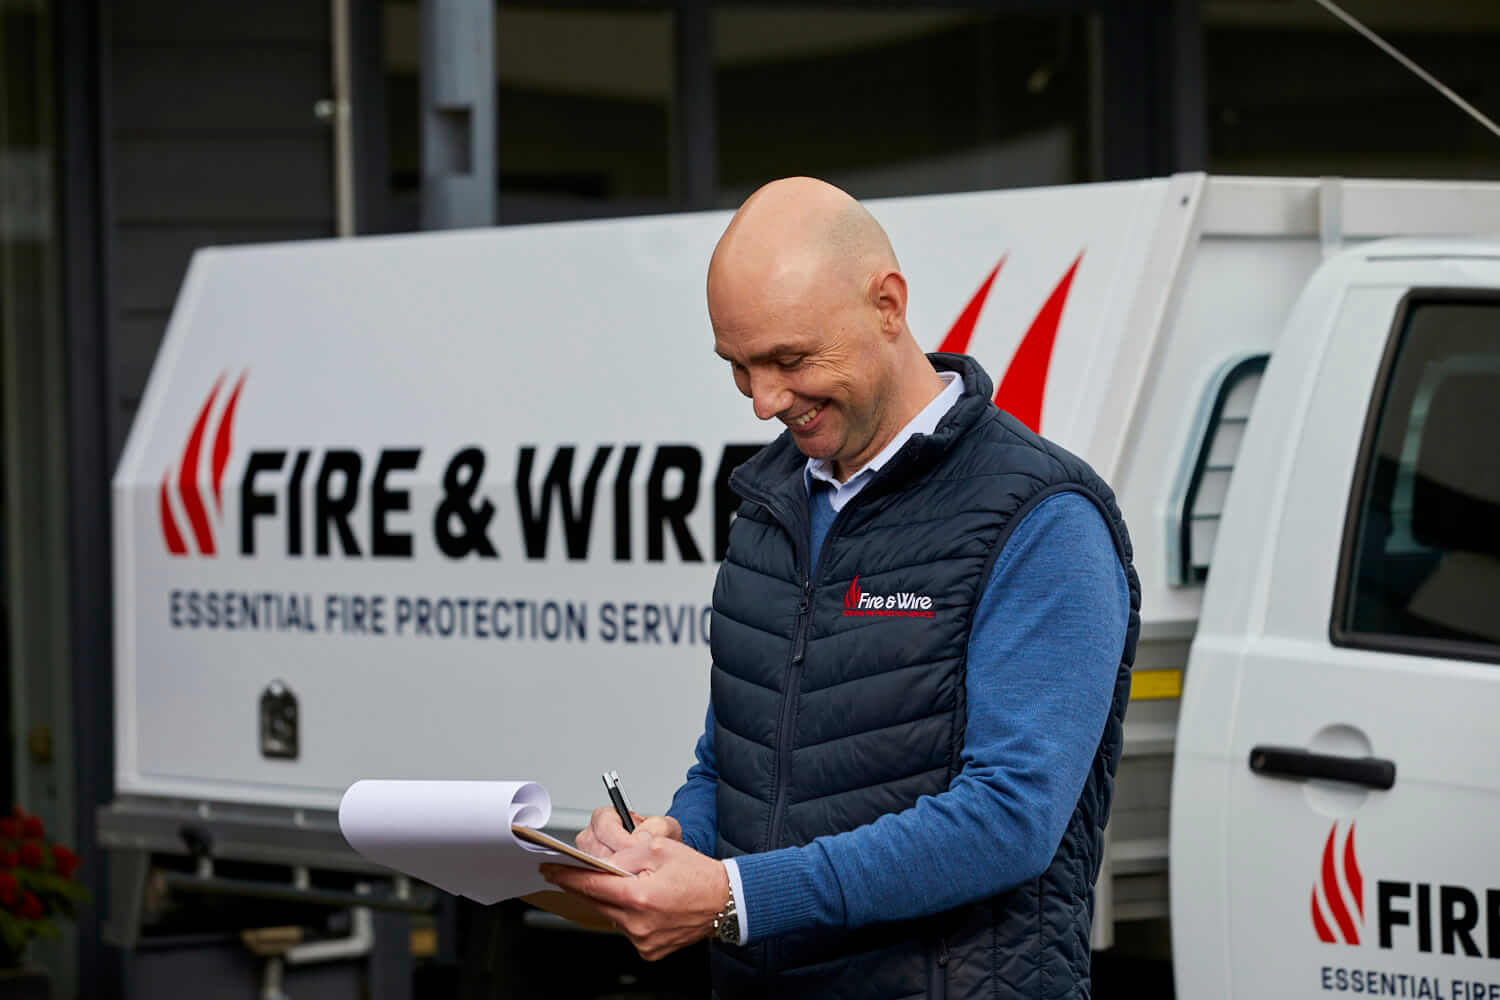 A Fire and Wire employee makes notes on a clipboard, standing in front of a Fire and Wire work vehicle